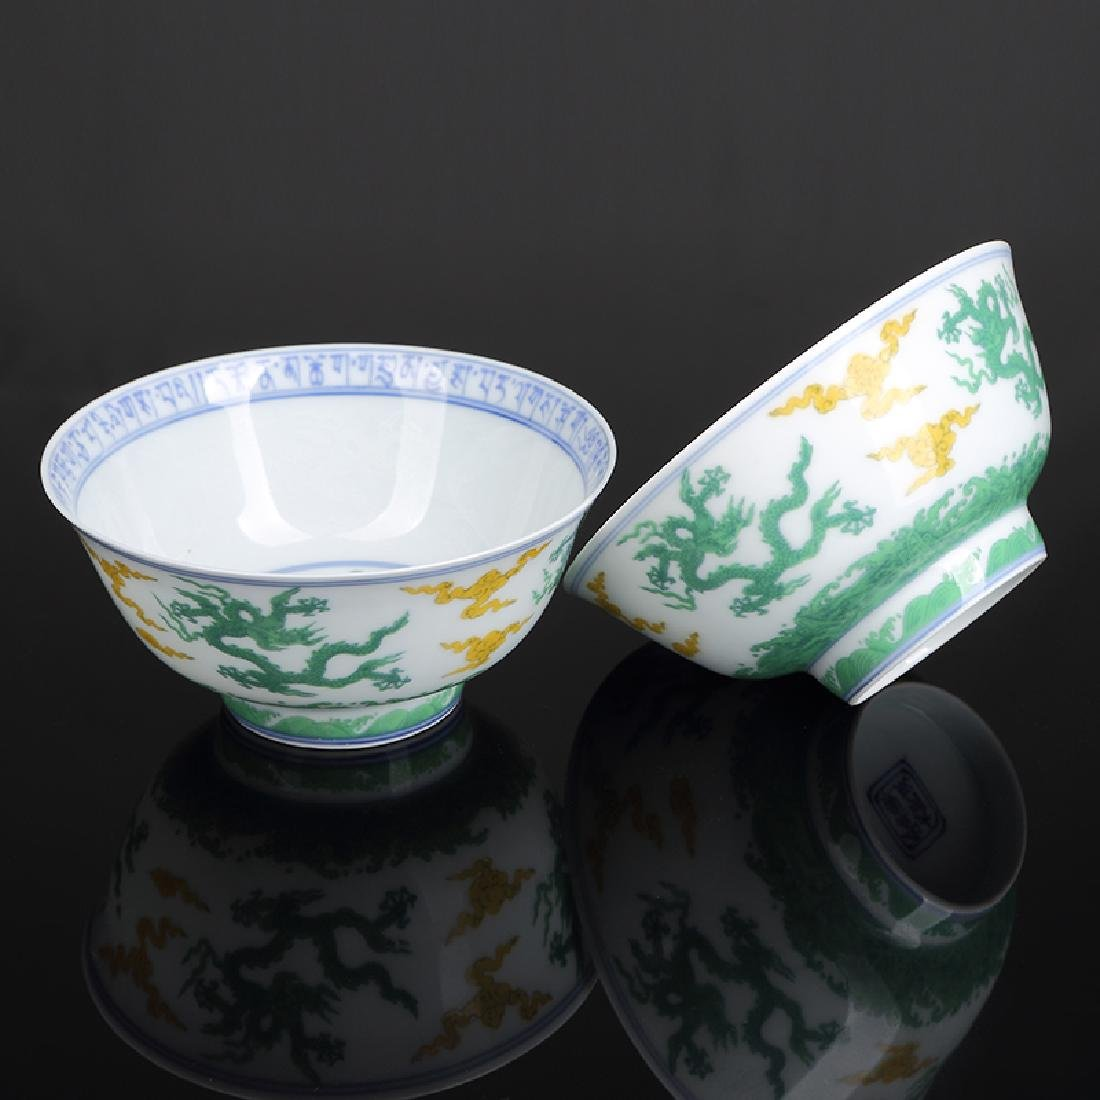 Pair of Chinese Doucai Yellow and Green Porcelain Bowls - 2